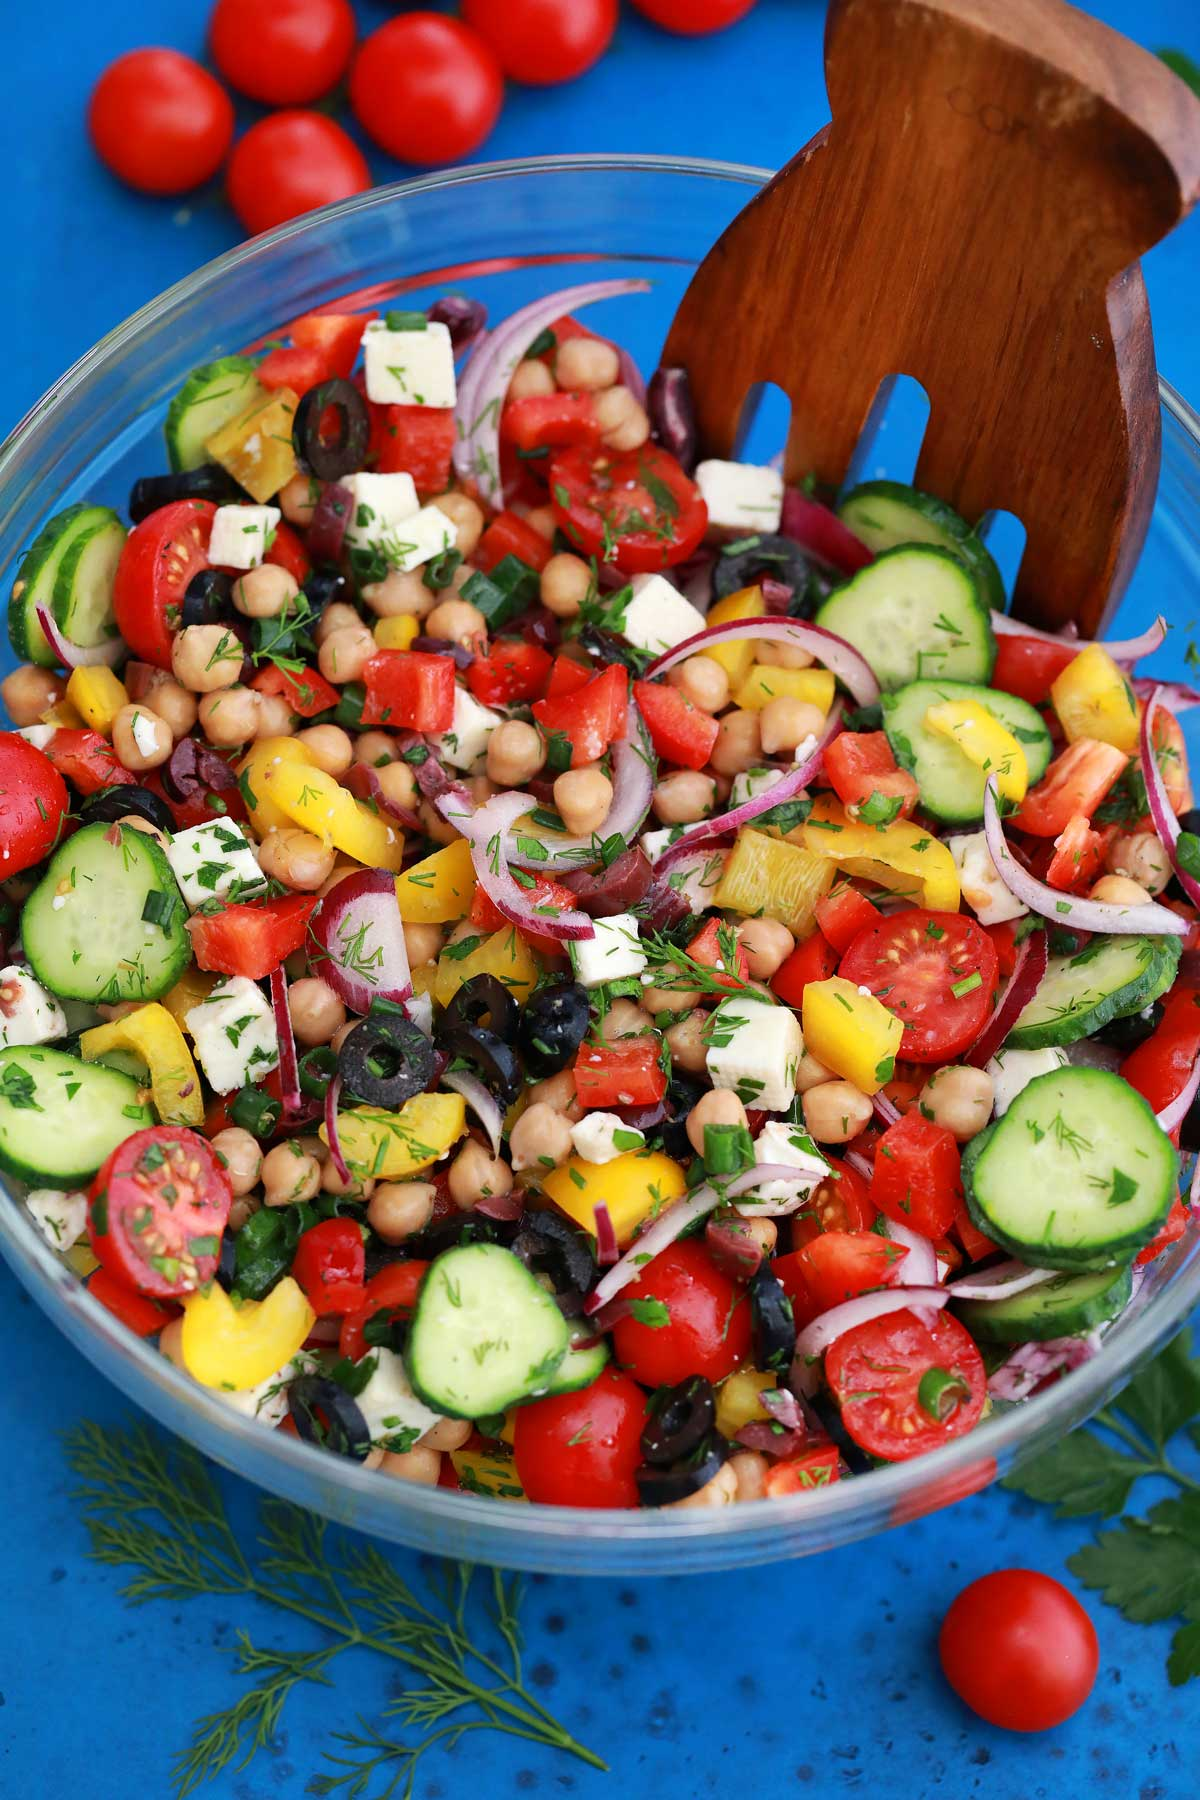 Mixing salad in bowl